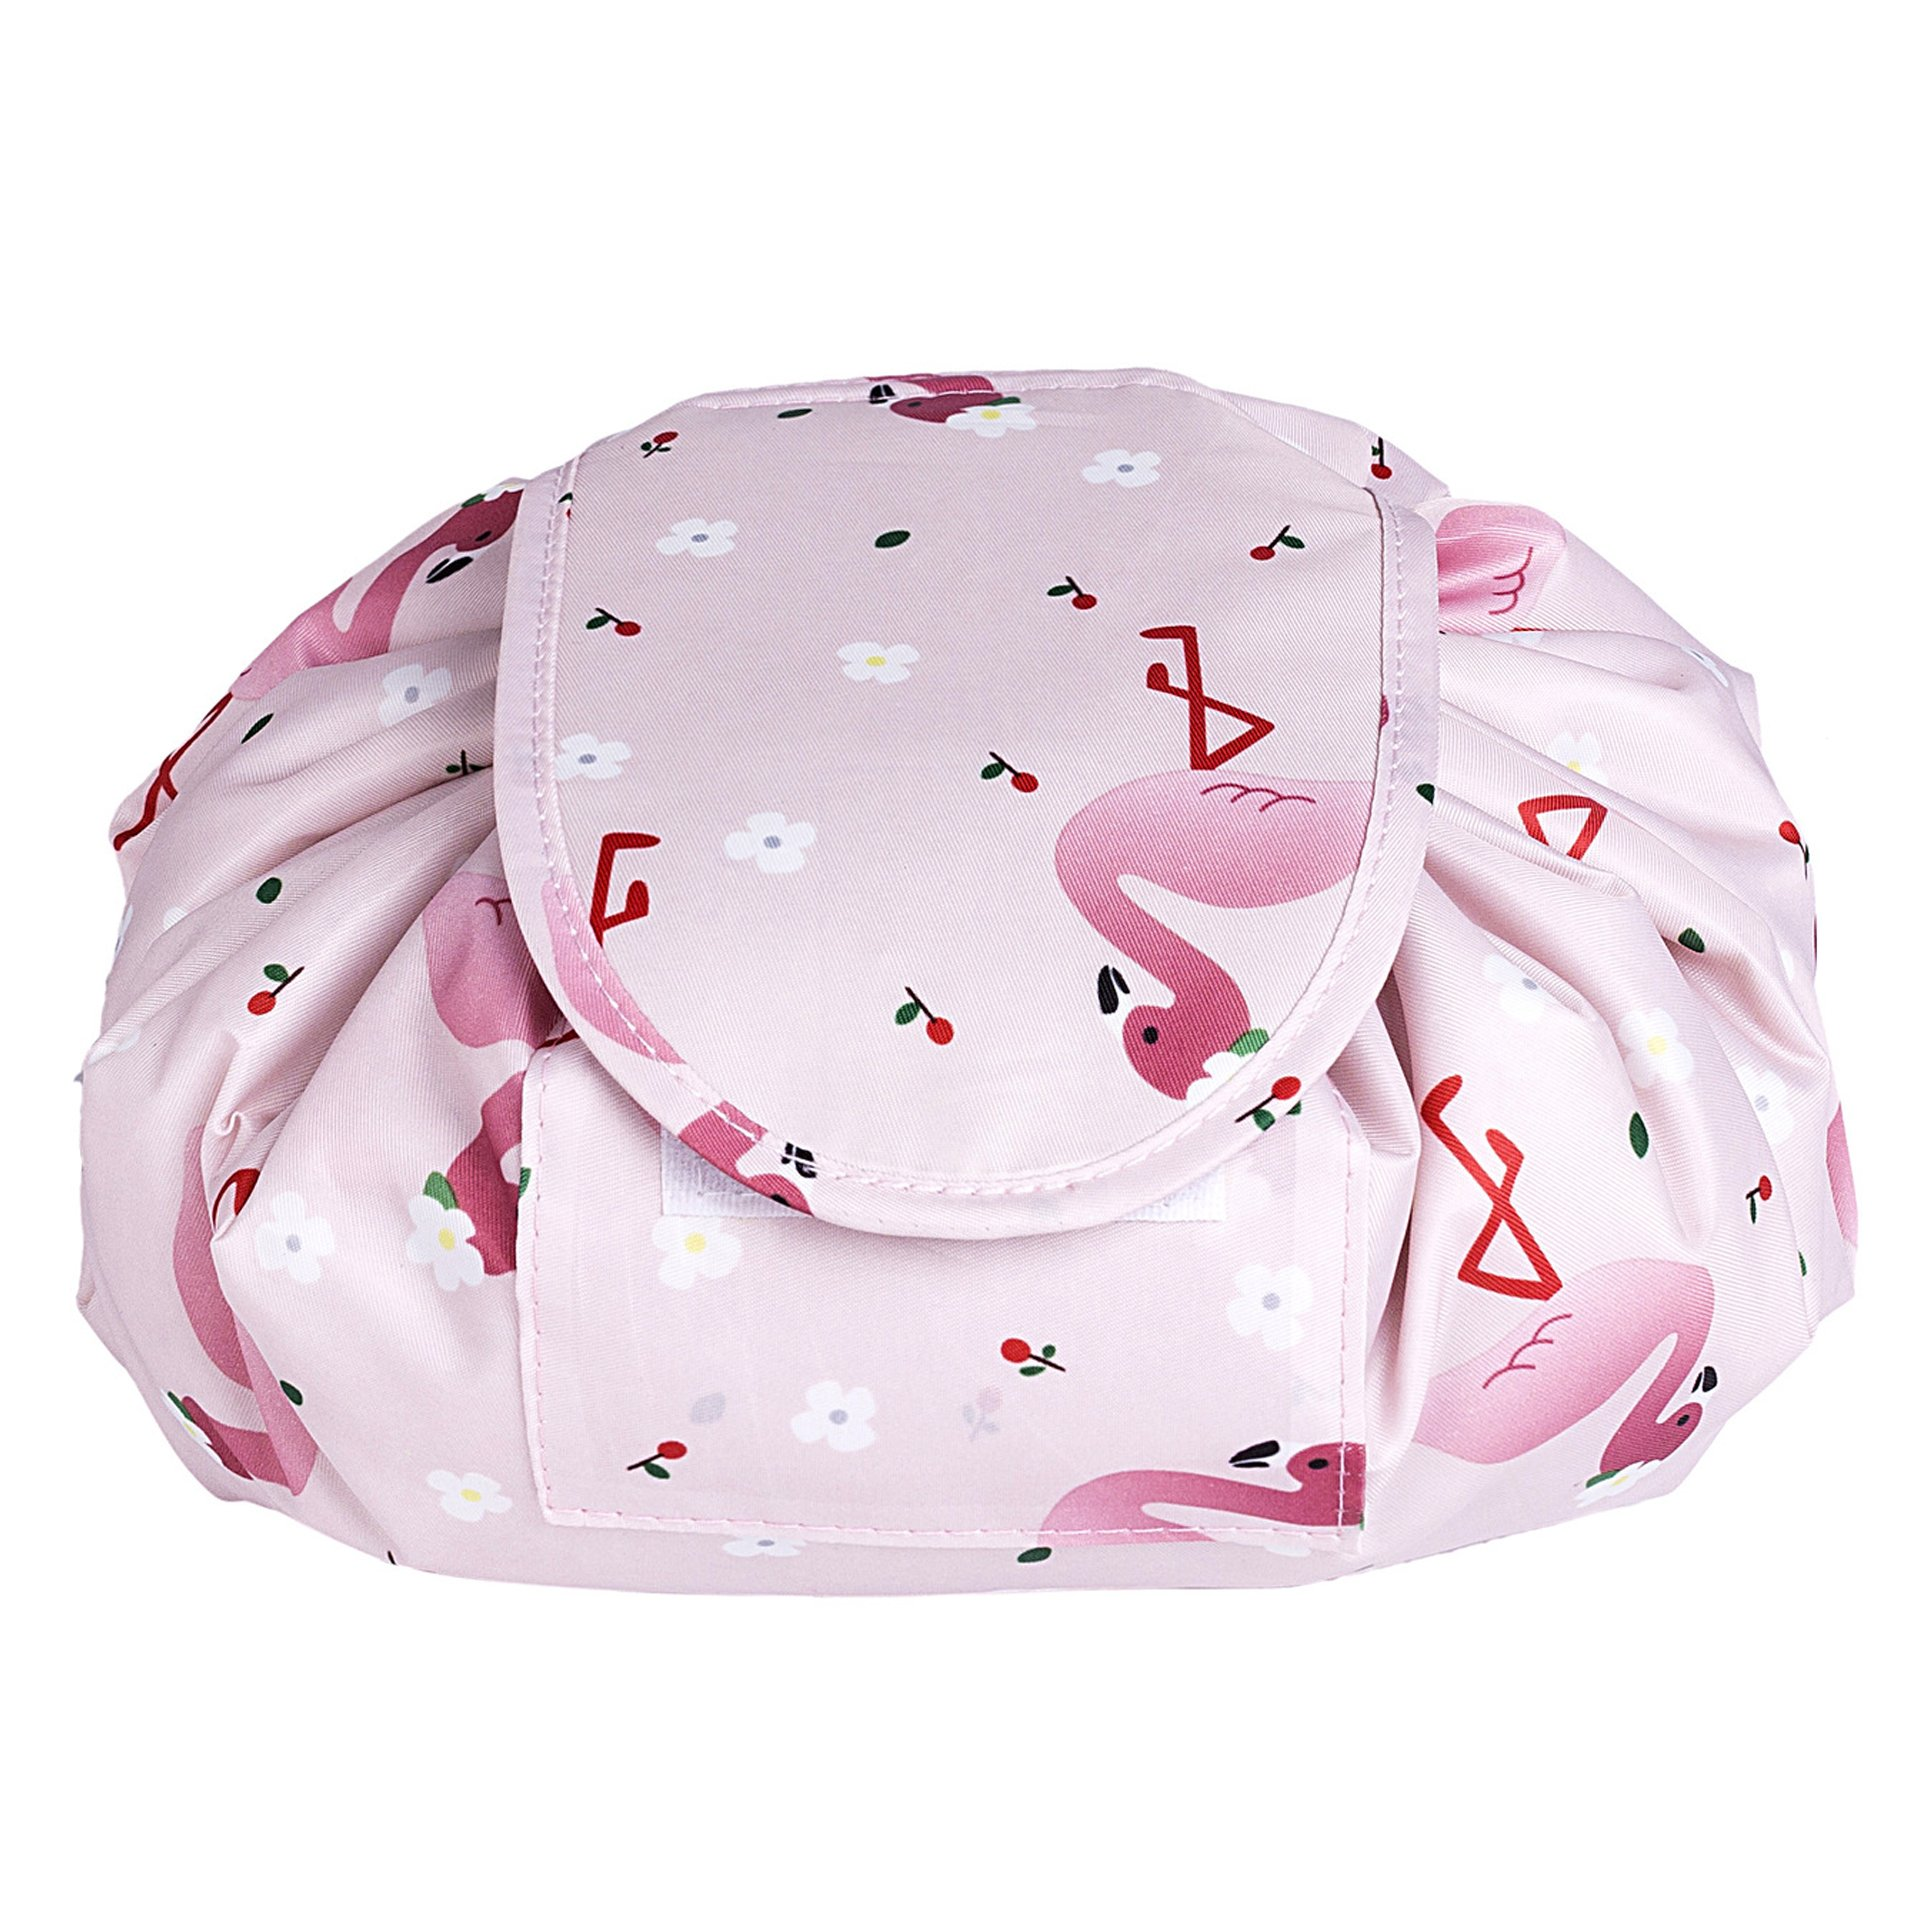 Portable Drawstring Cosmetic Bag Large Capacity Lazy Travel Makeup Pouch magic Toiletry Bag for Womens Girls,Pink Flamingo